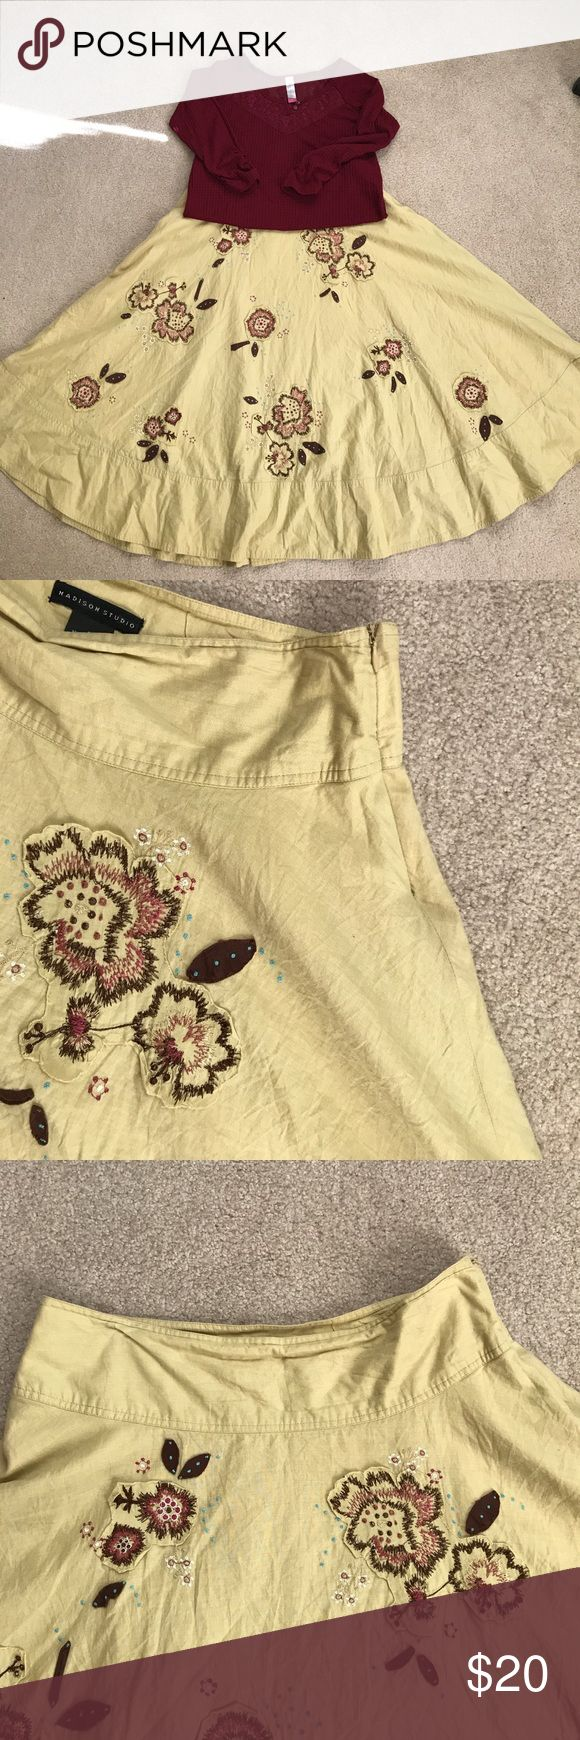 Fall outfit! Lace Henley & full midi Floral Skirt Skirt is 100% cotton with a satin liner. Beige/cream with brown/wine color/cream flower embroidery. Full and flowy! Shirt is a junior size L (11-13 stretchy) ruche 3/4 inch sleeve Henley with faux buttons on the neckline and lace detail. Beautiful wine color that goes perfectly with skirt. I wore this outfit last fall with tall brown boots and a cream lace blanket scarf❤️ madison studio Skirts Midi